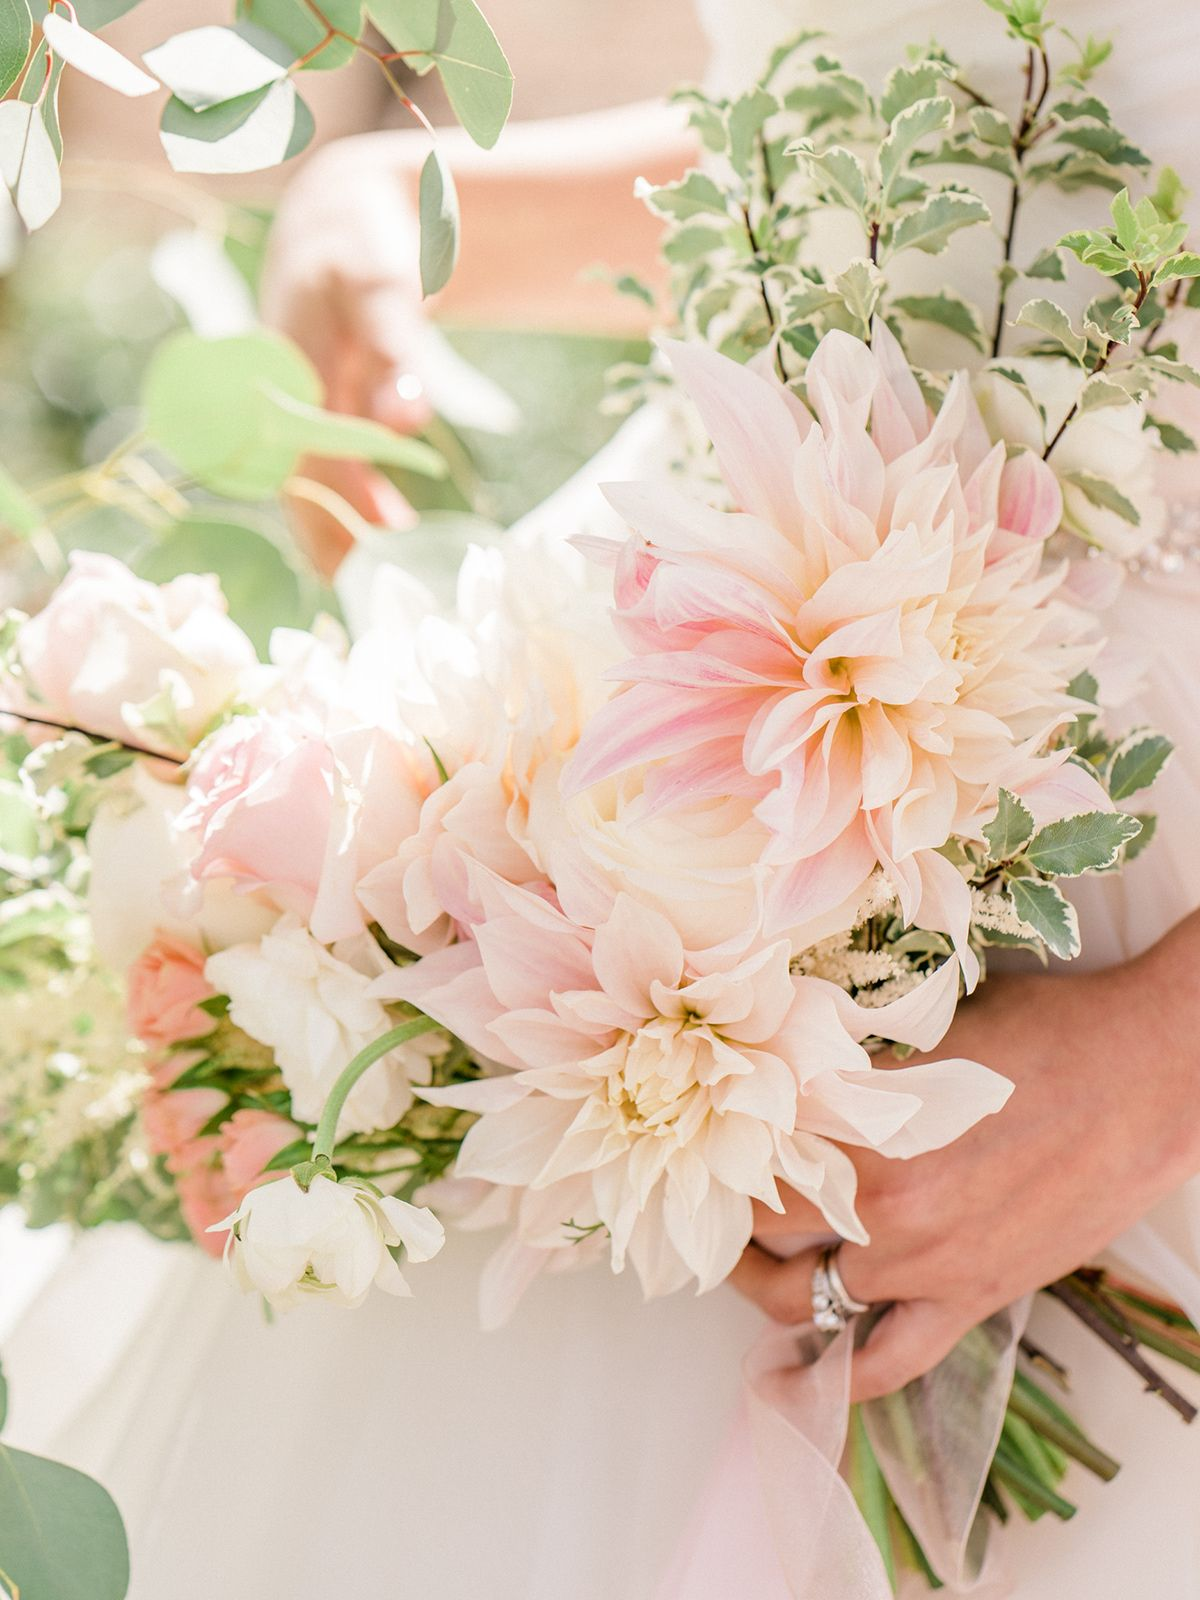 Rustic Romantic And Organic Blush And White Bridal Bouquets Wedding